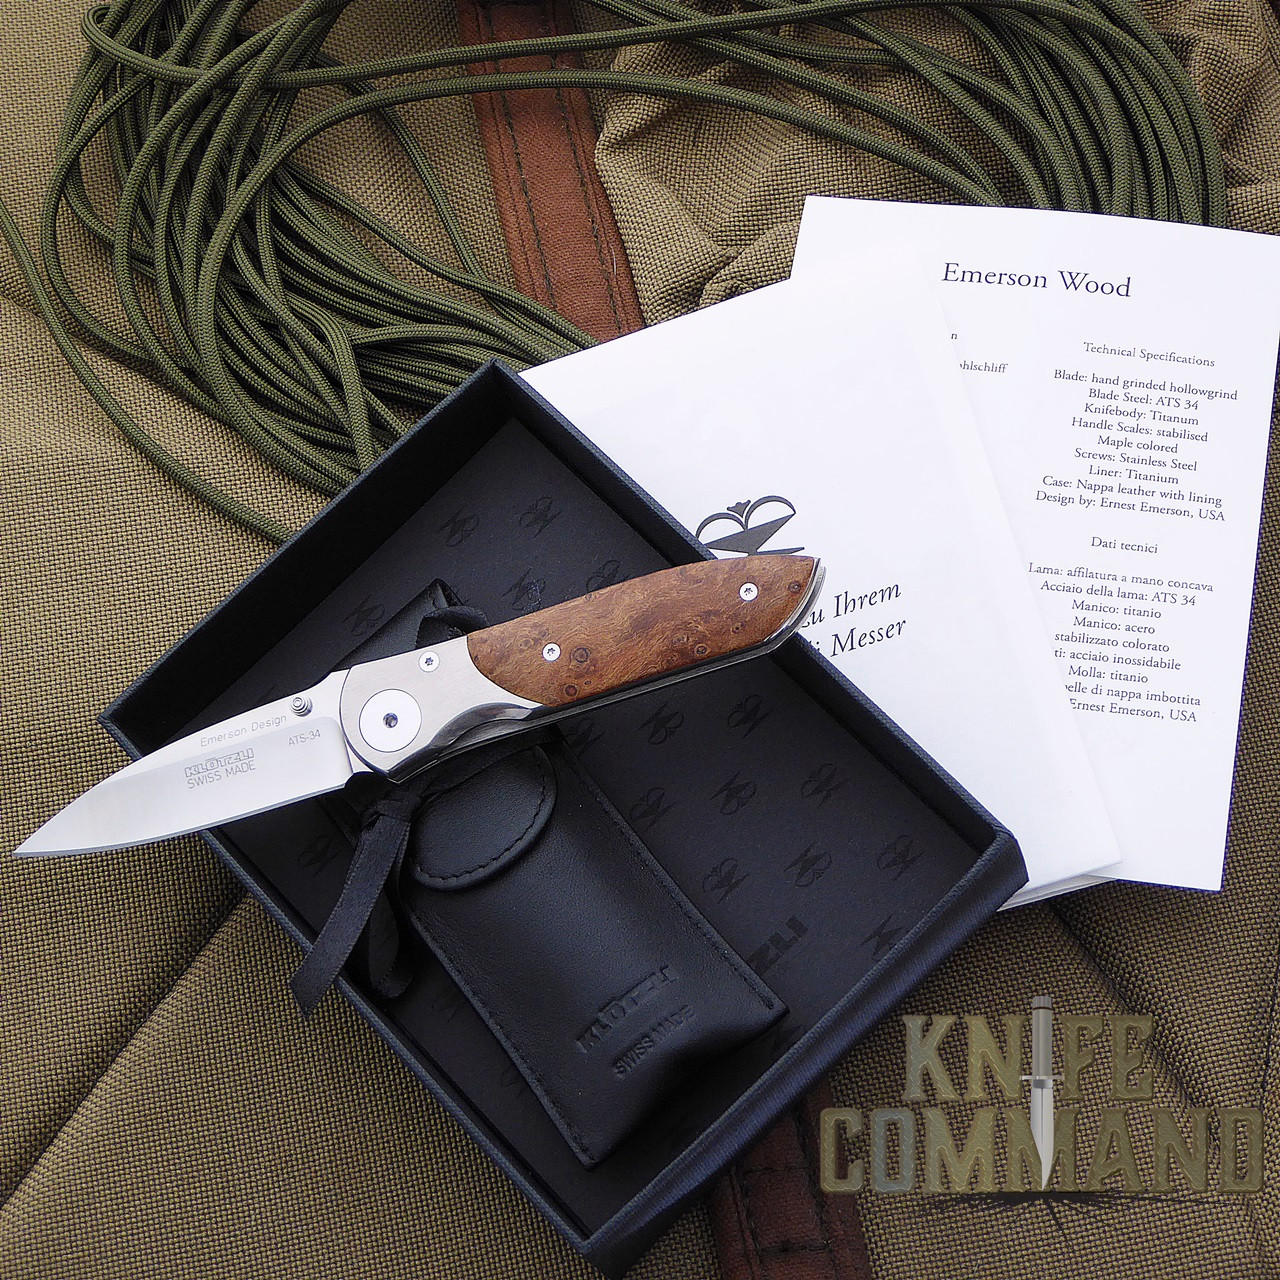 Klotzli Knives Ernest Emerson Titanium Maple Folding Knife.  Classy packaging with papers.